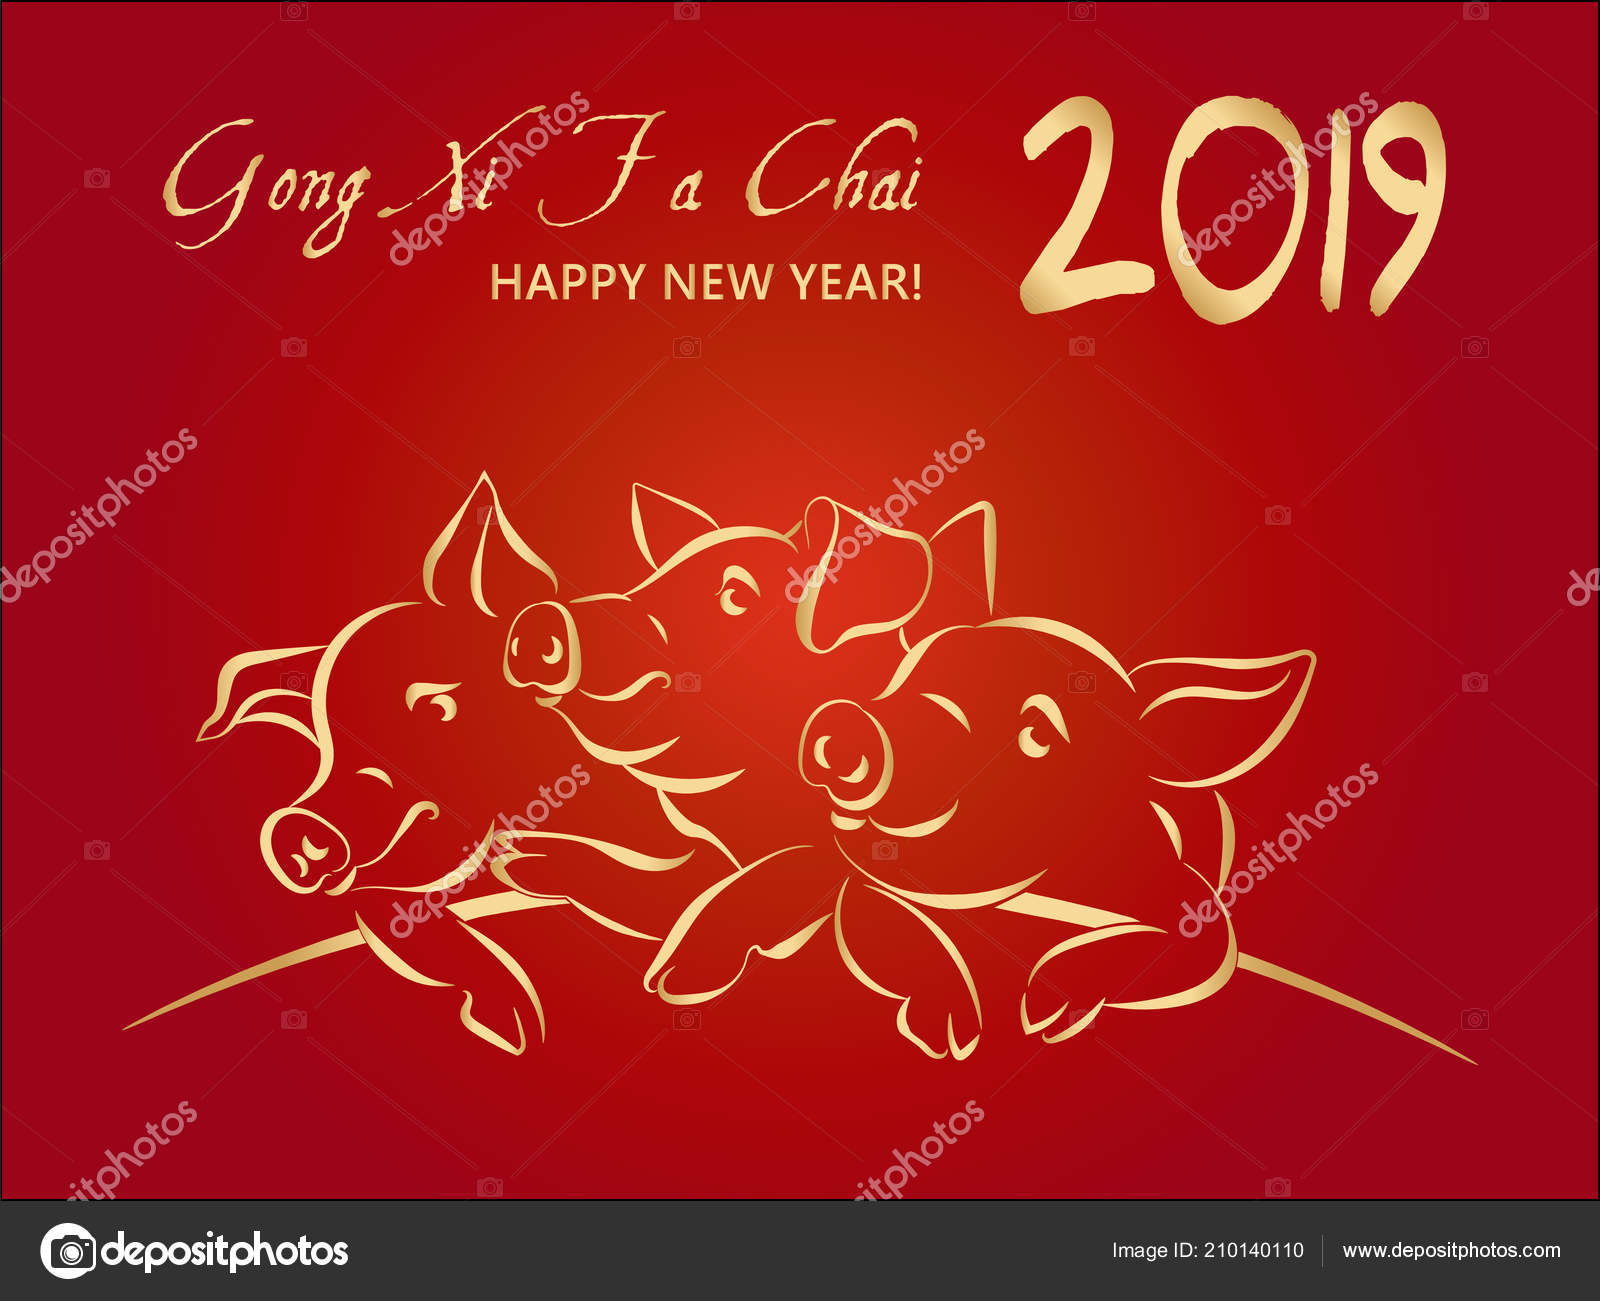 2019 happy chinese new year greeting card with 3 gold pigs translation gong xi fa cai wish you prosperity in the new year on red gradient background